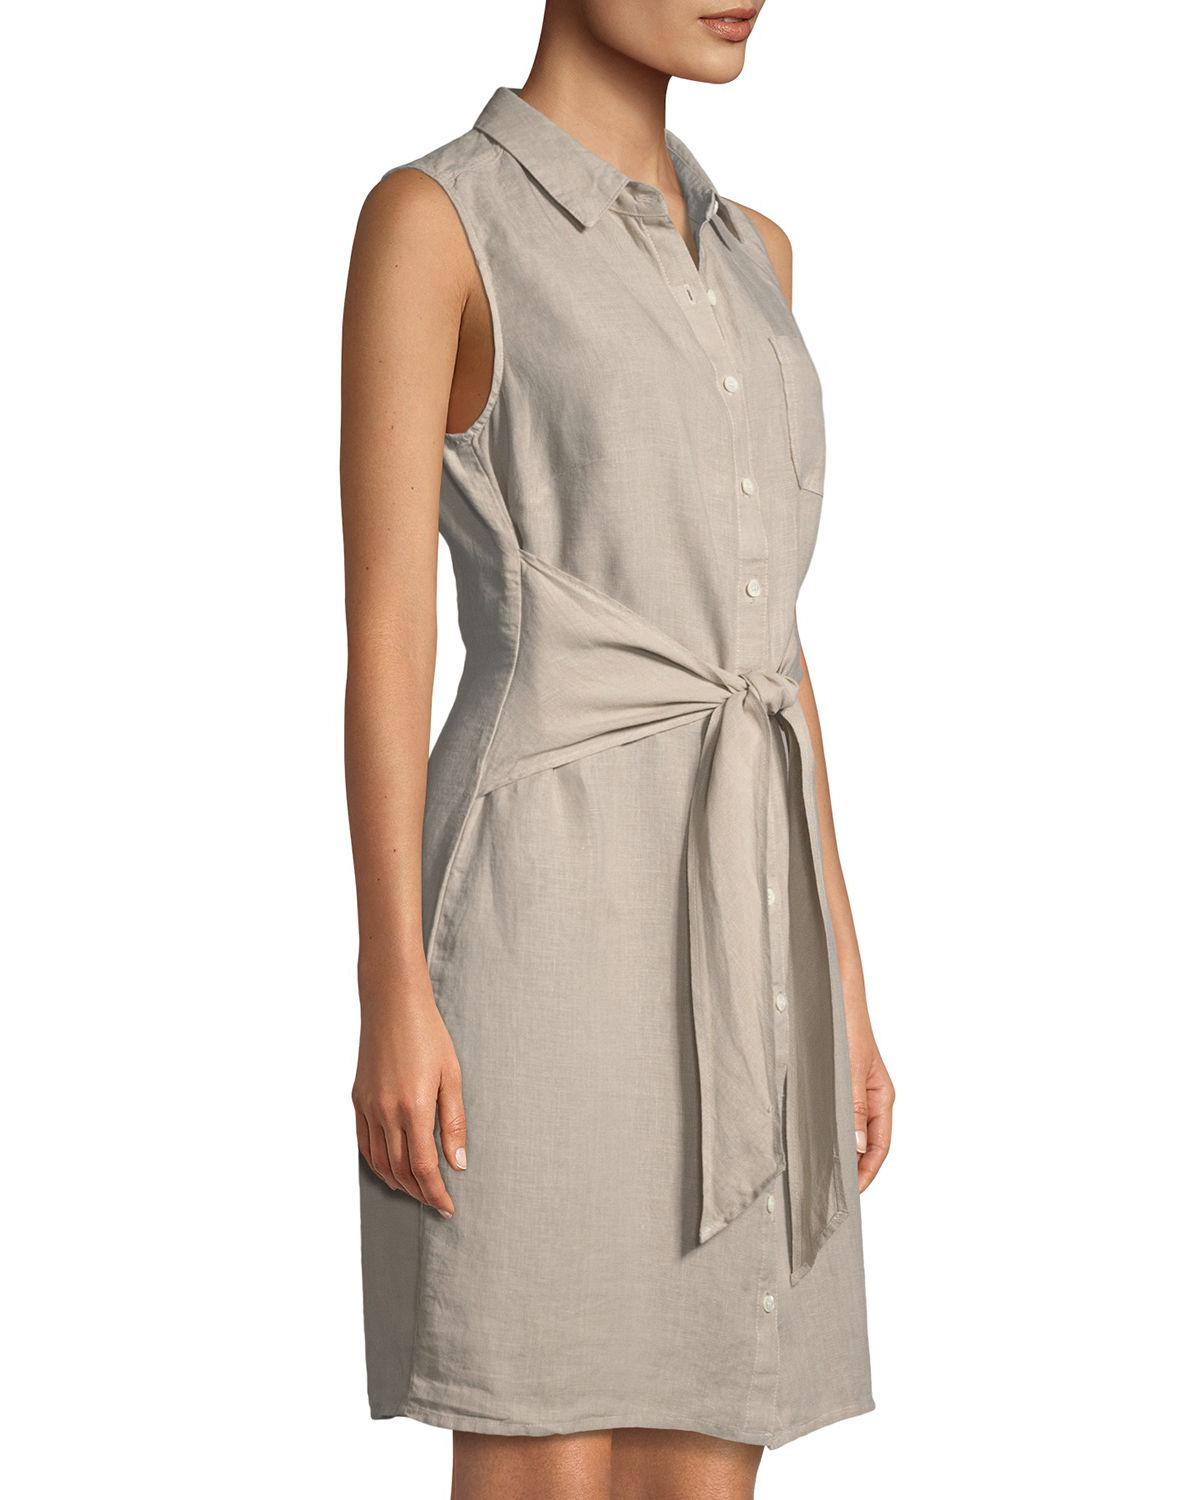 aac17c25ac3056 Lyst - Three Dots Sleeveless Tie-front Linen Shirtdress in Natural